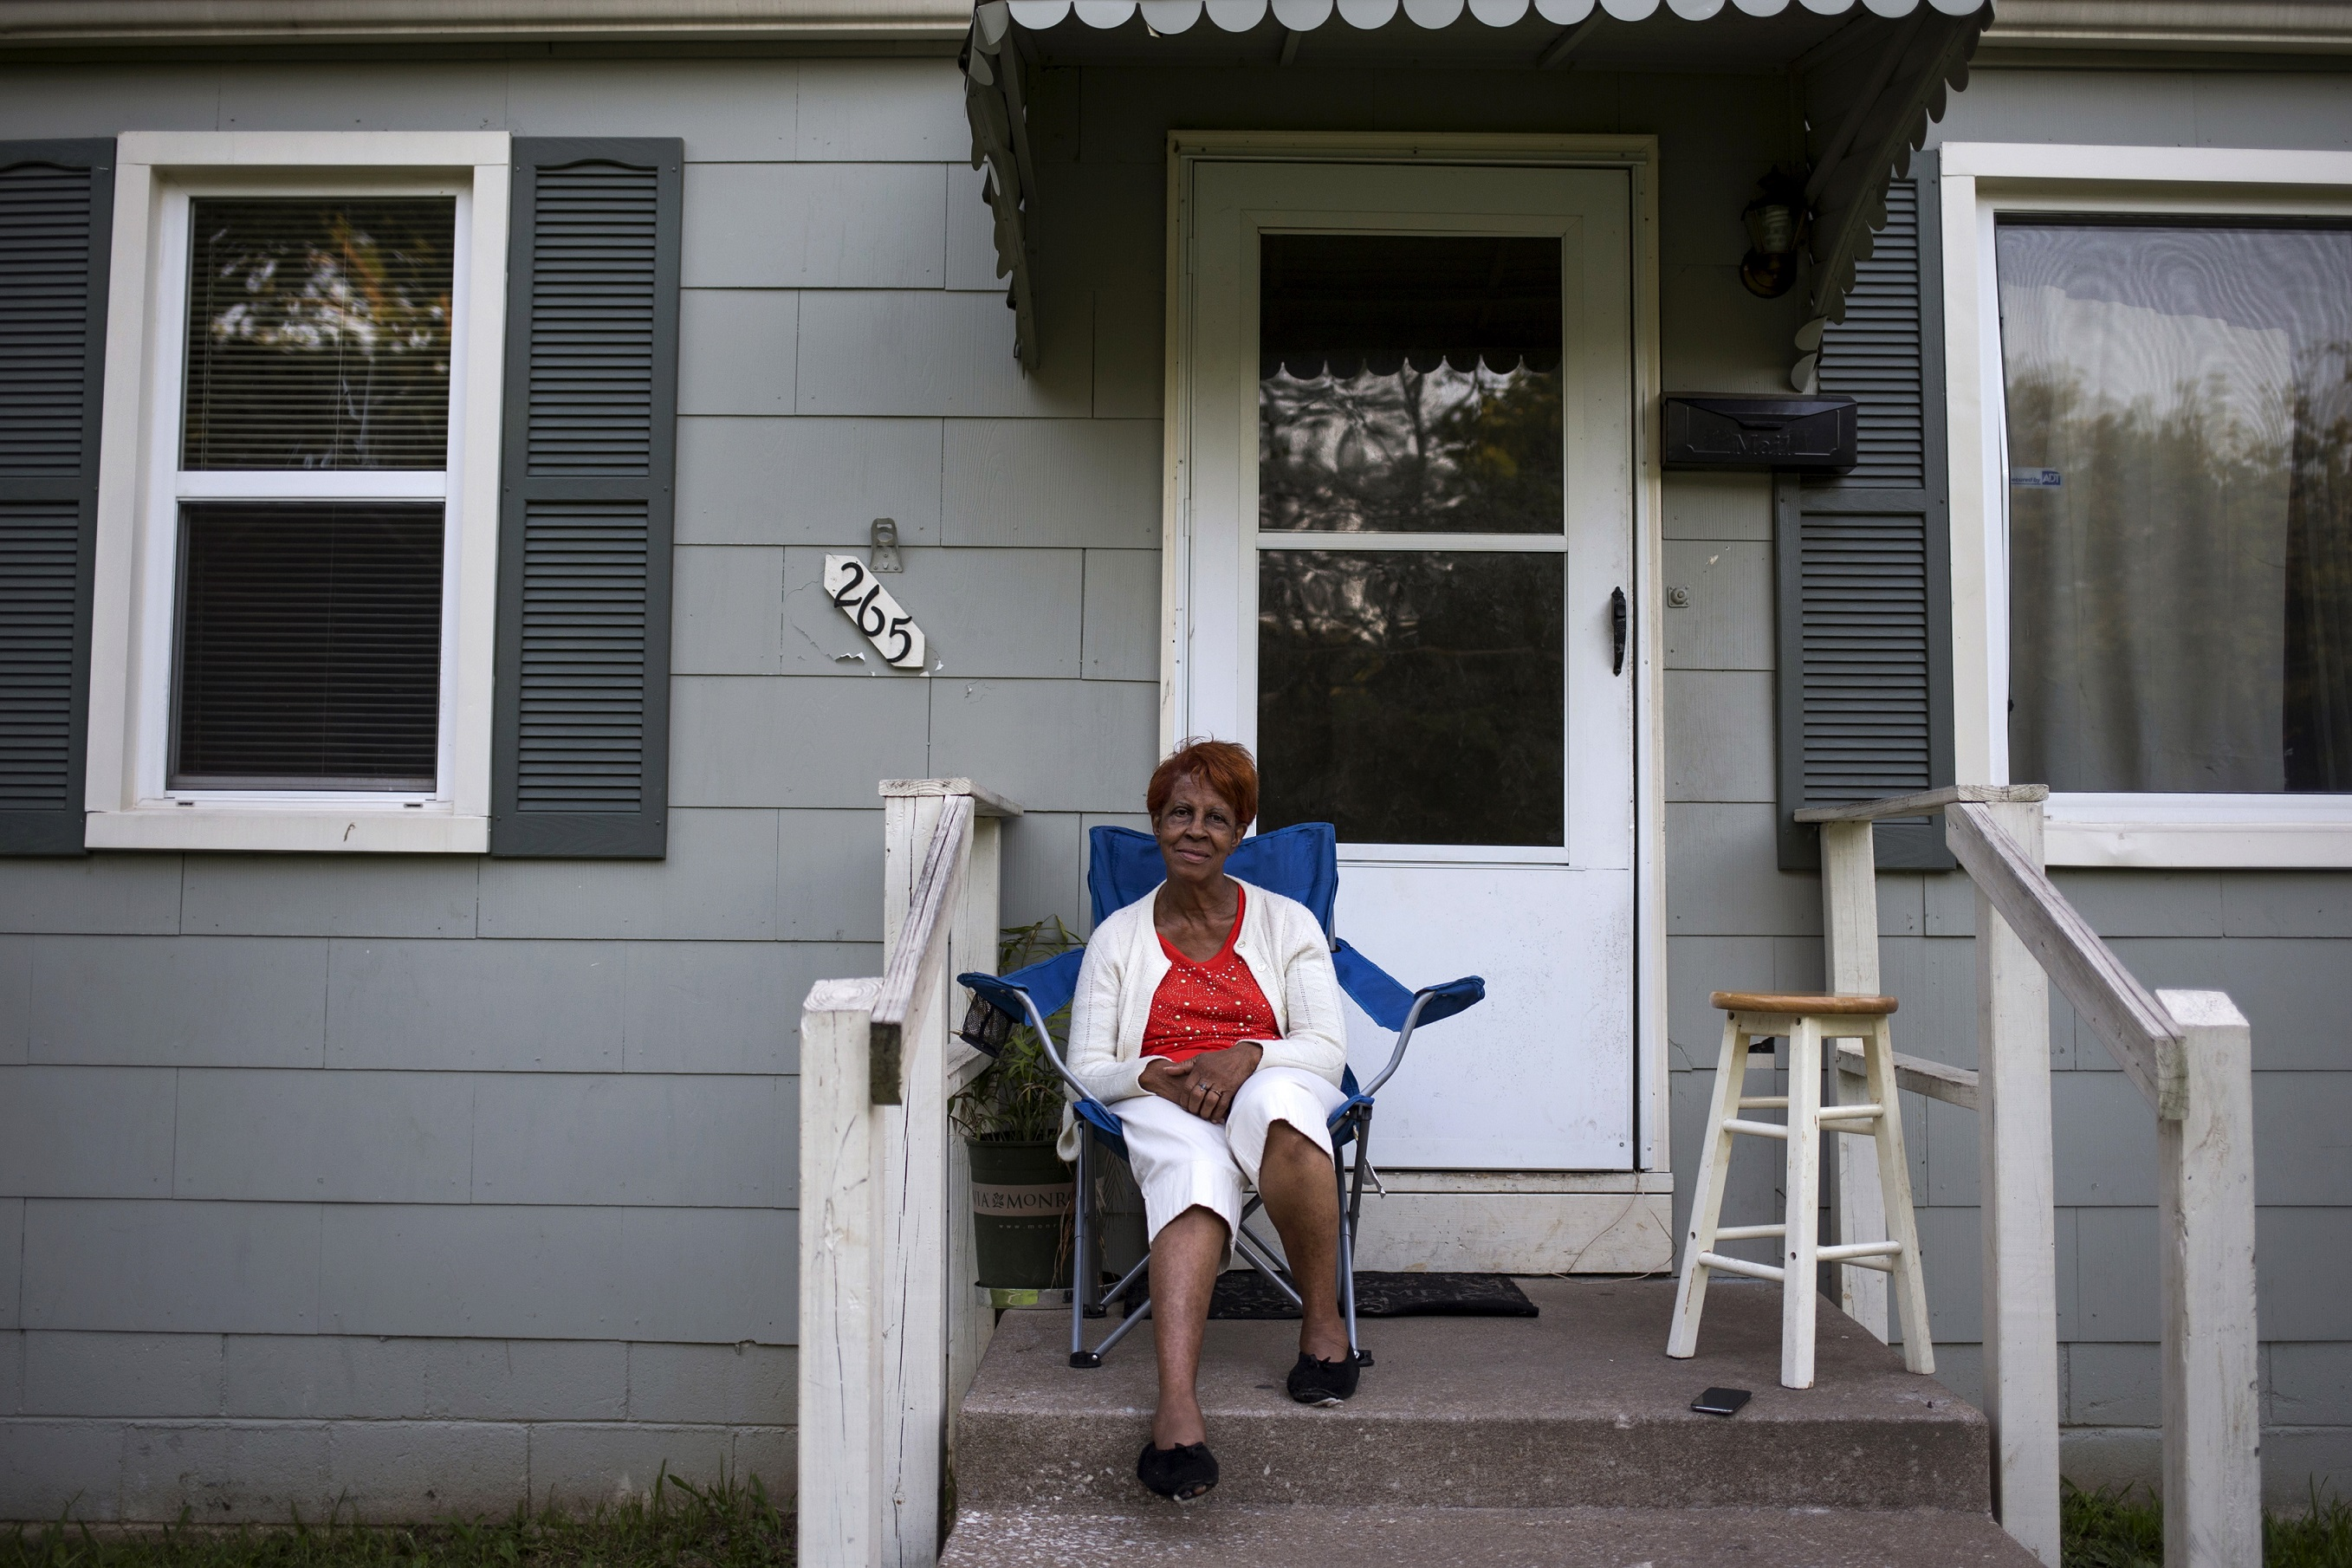 """Cora Gates, 68, a grandmother, poses for a portrait outside her family home in Ferguson, Missouri July 23, 2015. When asked how Michael Brown's death affected her life, Gates said, """"It didn't affect my life at all. I still sit on the porch like normal. I heard the guns but I didn't do nothing so I don't have to be afraid of nobody."""" When asked what changes she has seen in her community over the past year, Gates said, """"I don't get out of the house much so I cannot say."""" On August 9, 2014 a white police officer shot unarmed black teenager Michael Brown dead in the St. Louis suburb of Ferguson, Missouri. A year later Reuters photographer Adrees Latif returned to Ferguson, where he has documented events in the past year, to capture the portraits of local residents and canvass their views. REUTERS/Adrees Latif  PICTURE 5 OF 13 FOR WIDER IMAGE STORY """"PORTRAITS OF FERGUSON""""SEARCH """"LATIF PORTRAITS"""" FOR ALL PICTURES - GF20000014304"""